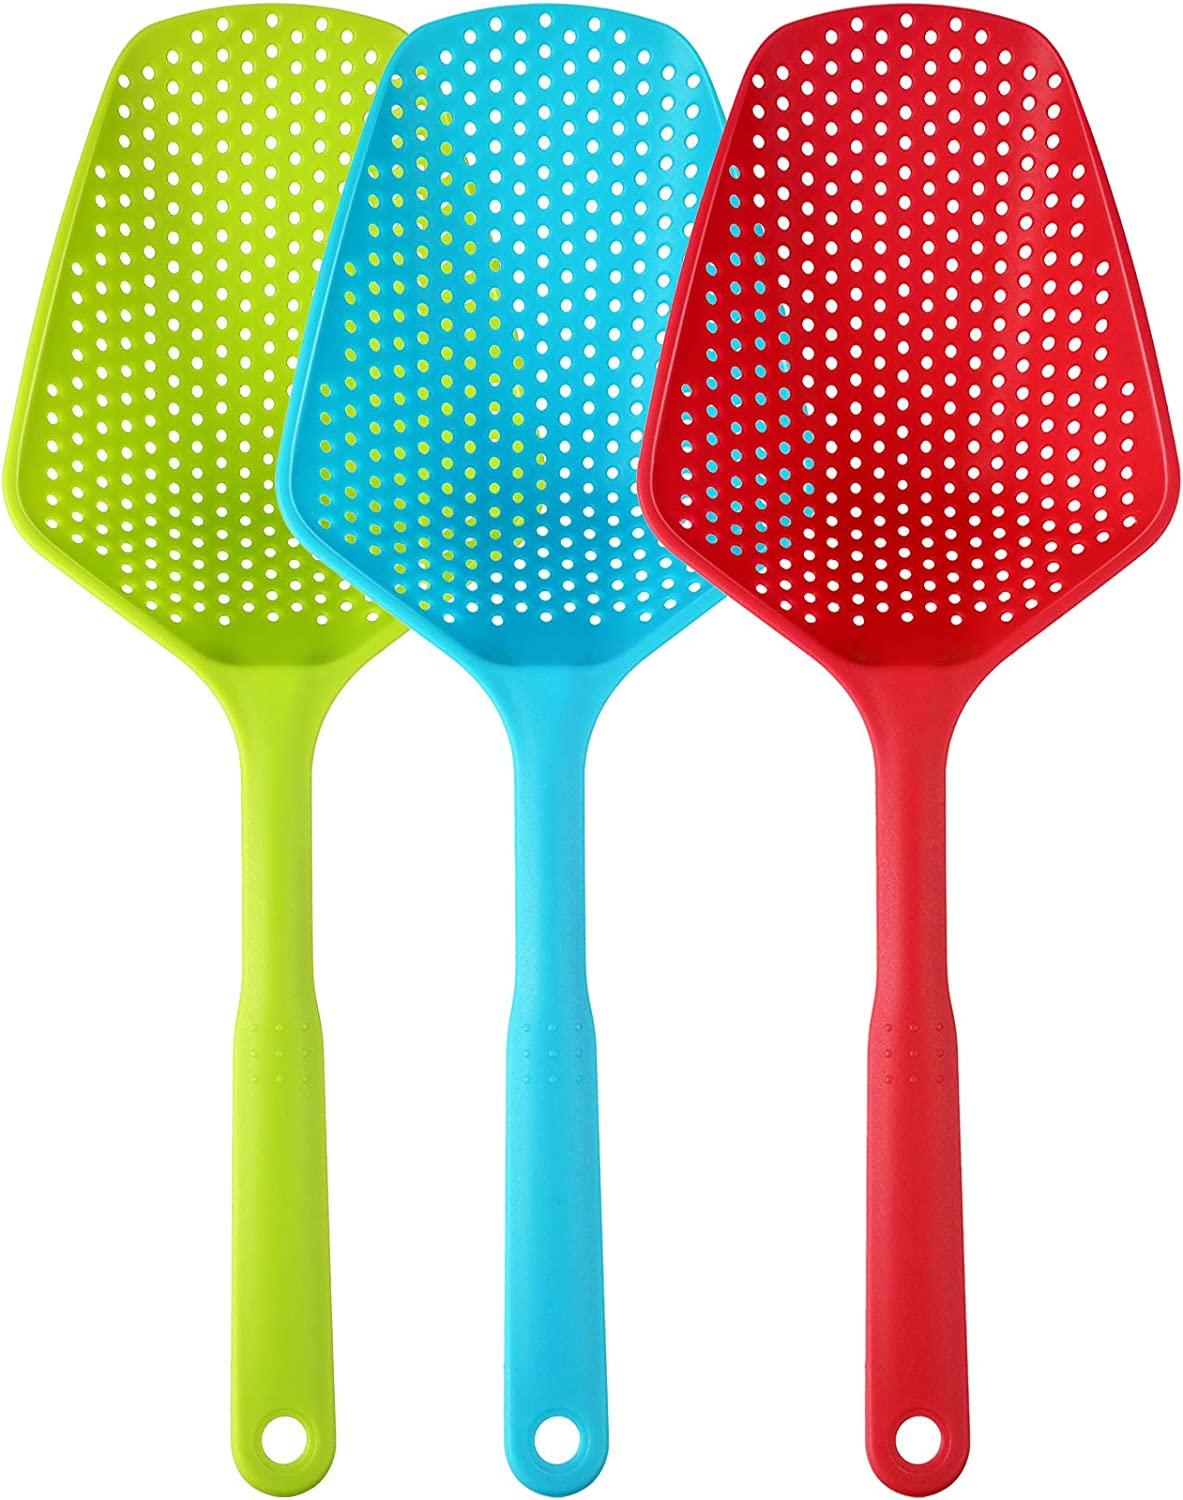 3 Pieces Scoop Colander Kitchen Strainer Scoop Food Drain Shovel Nylon Slotted Skimmer with Handle for Kitchen Cooking Baking Drain, Red Blue and Green